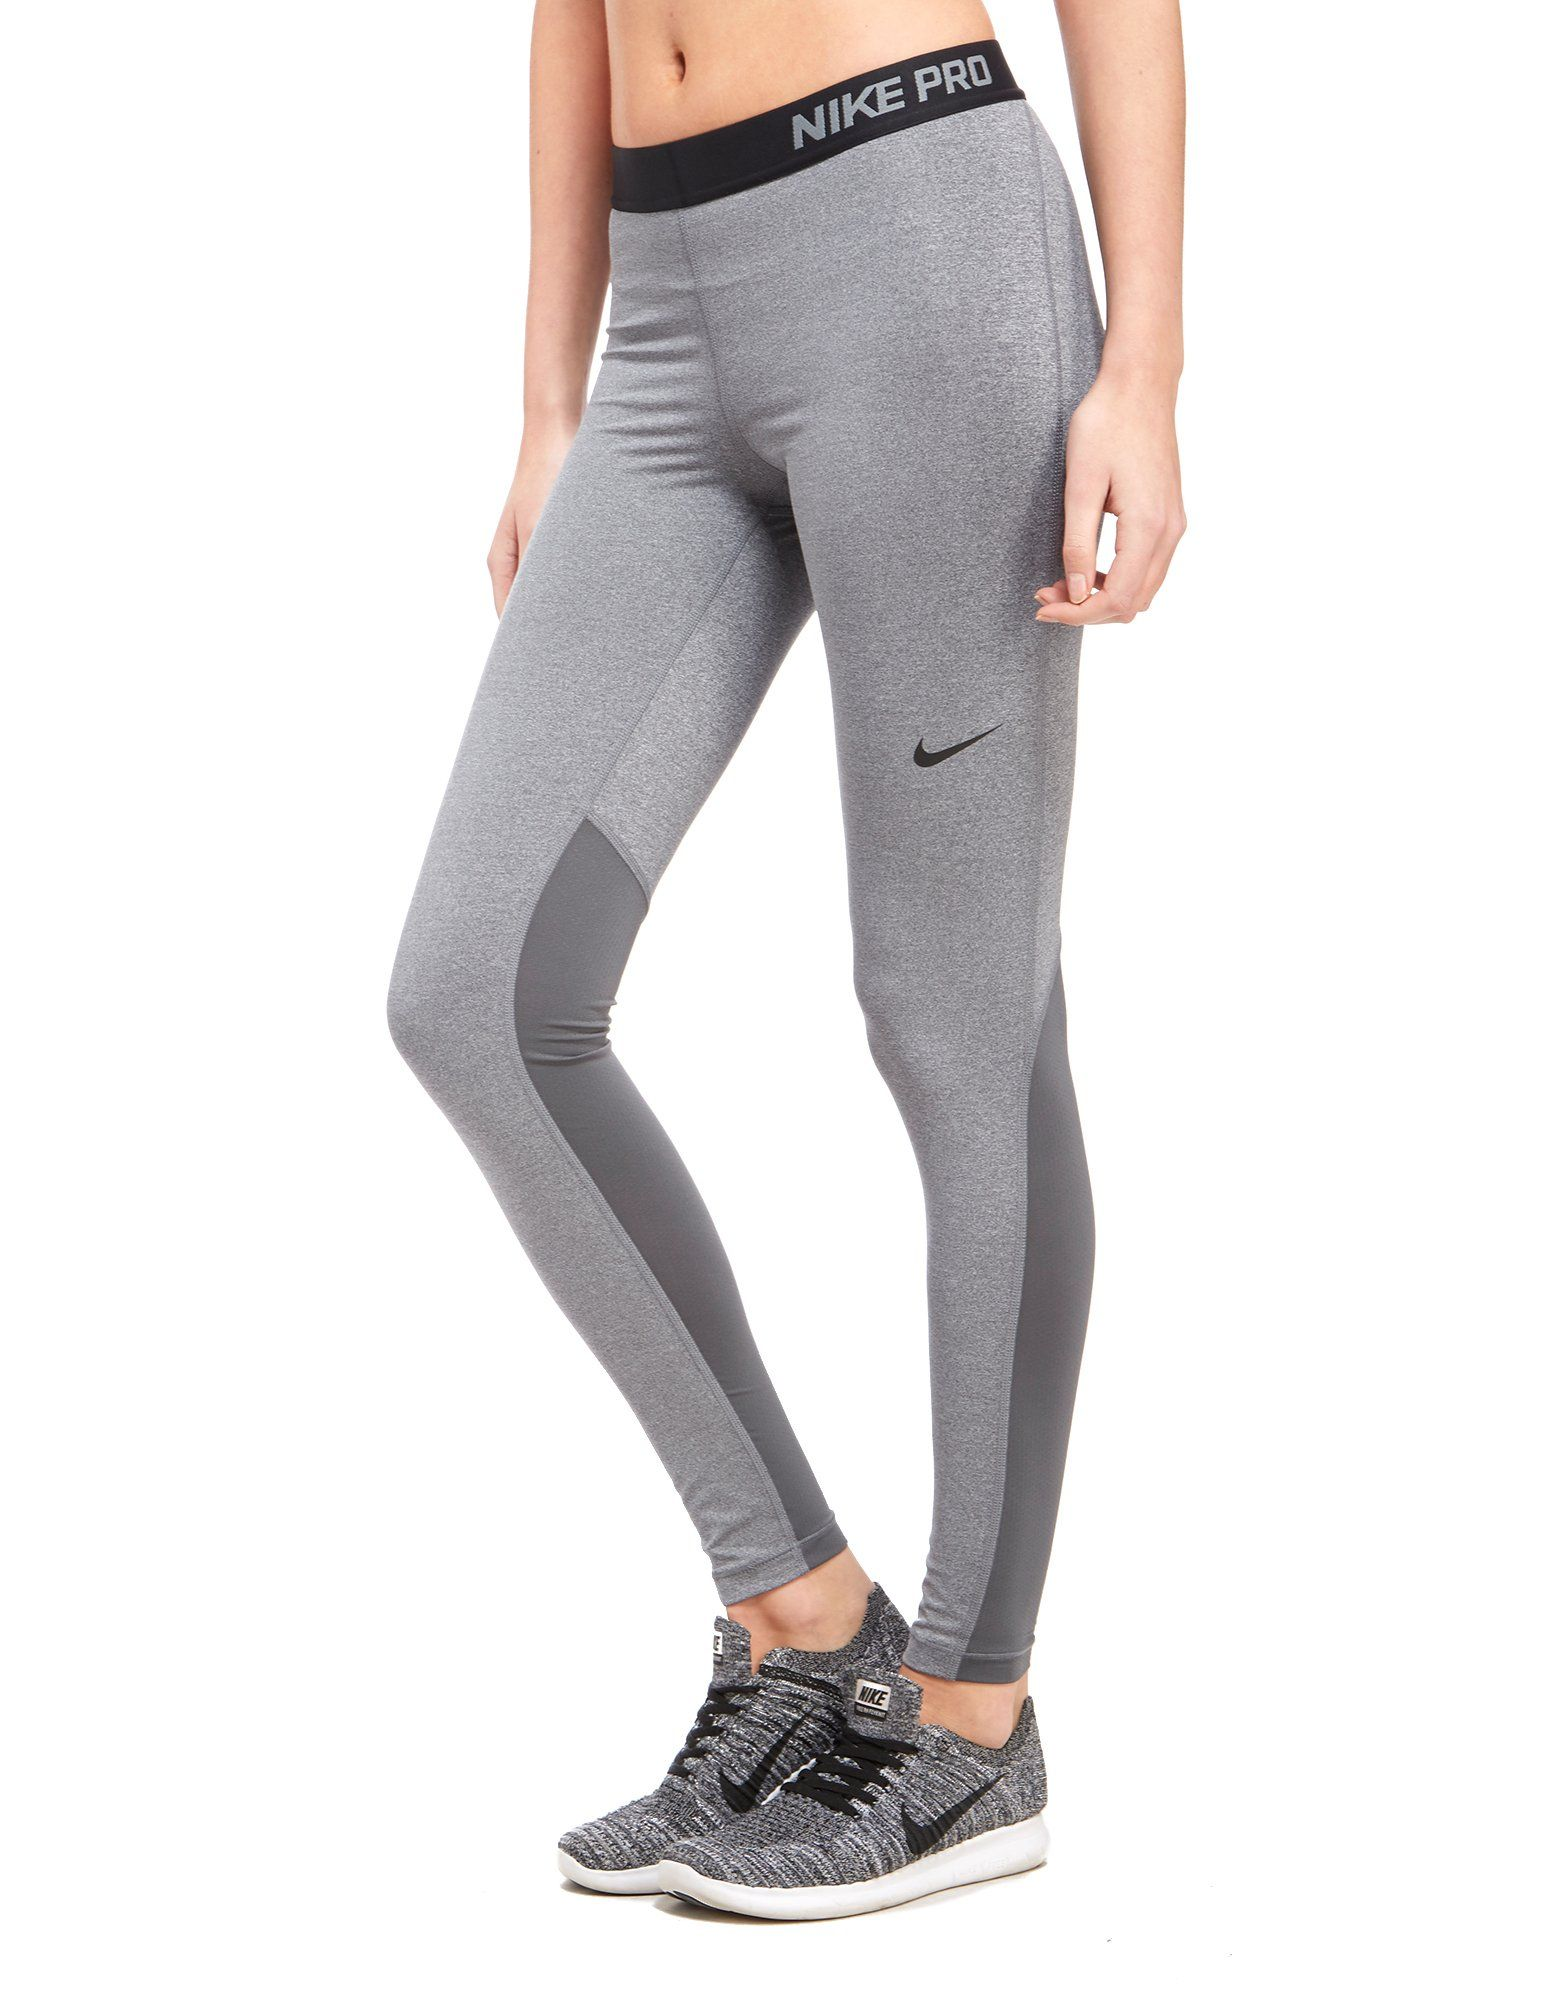 nike pro training tights jd sports. Black Bedroom Furniture Sets. Home Design Ideas